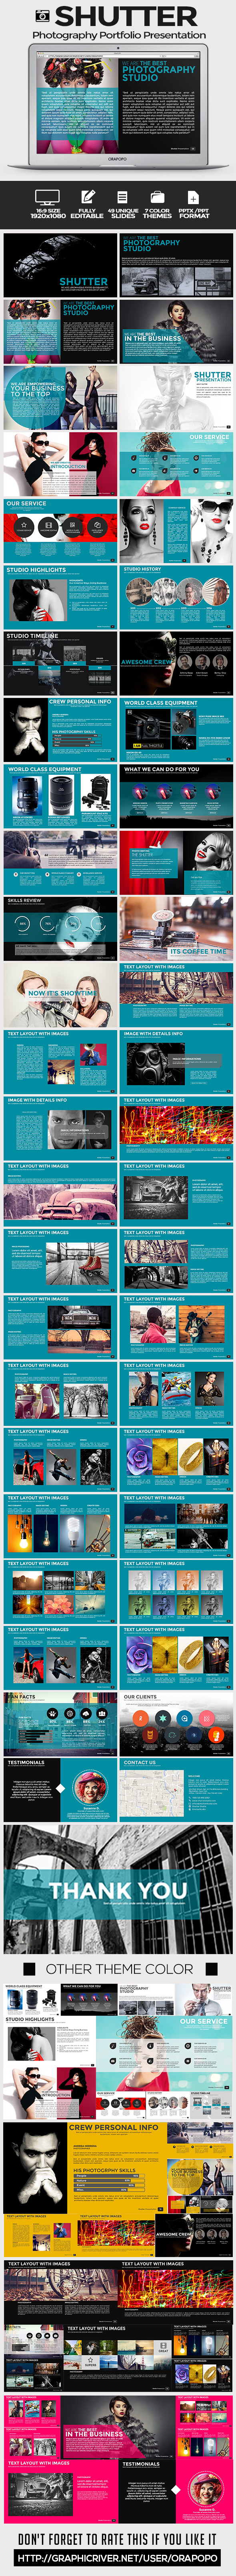 GraphicRiver Shutter Photography Portfolio Presentation 9174831